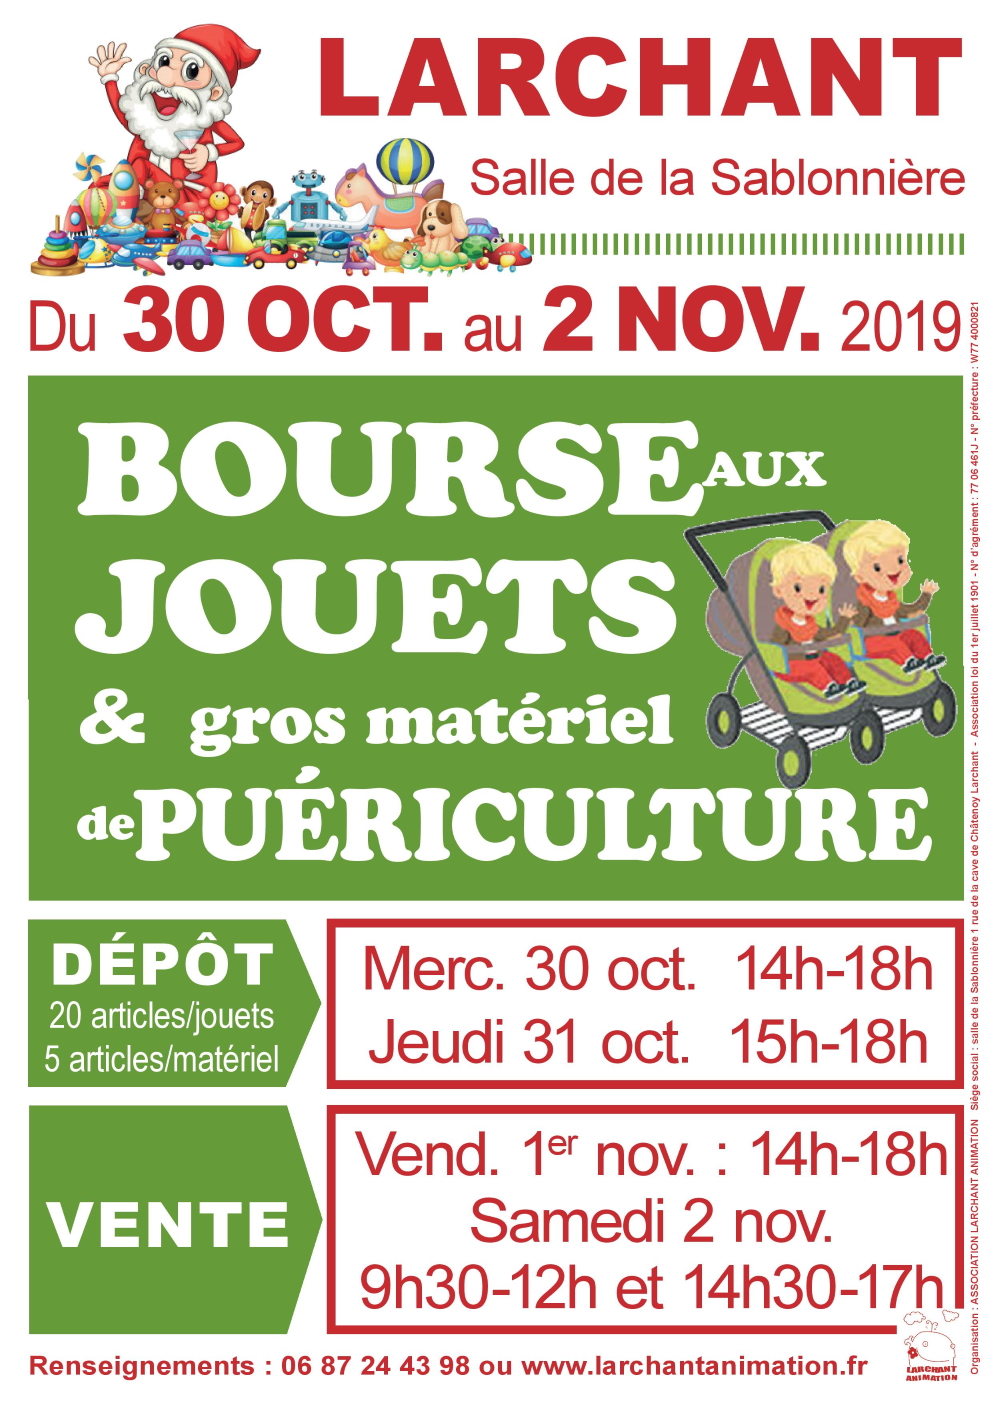 aff A2 bourse jouets 2019 B page 001